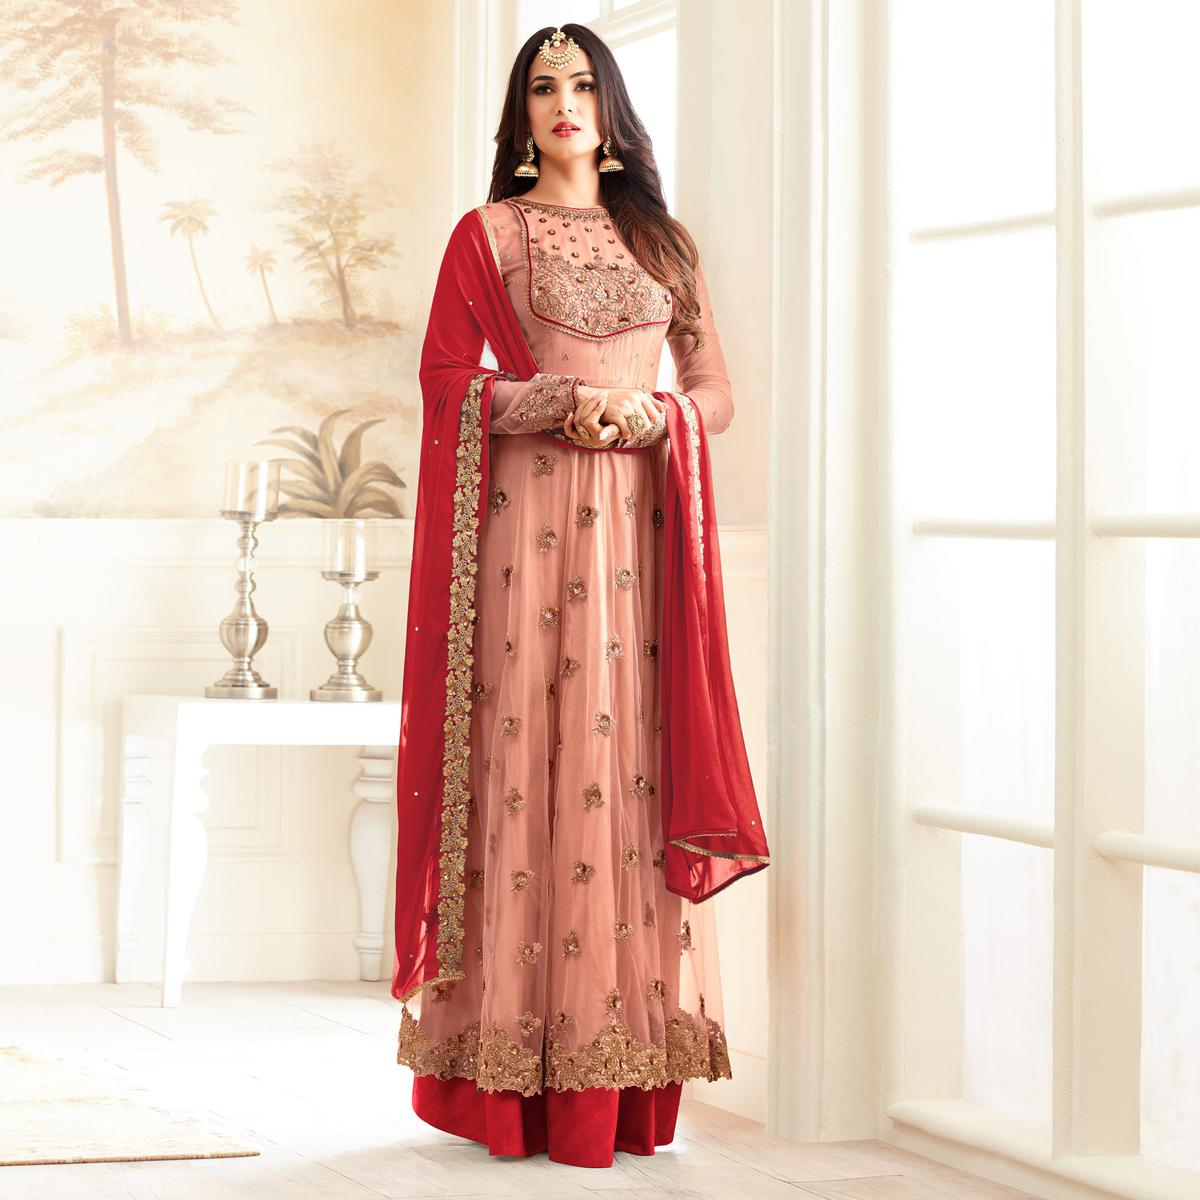 fe2e096c41 Buy Stylish Peach And Red Partywear Designer Embroidered Anarkali Suit  online India, Best Prices, Reviews - Peachmode